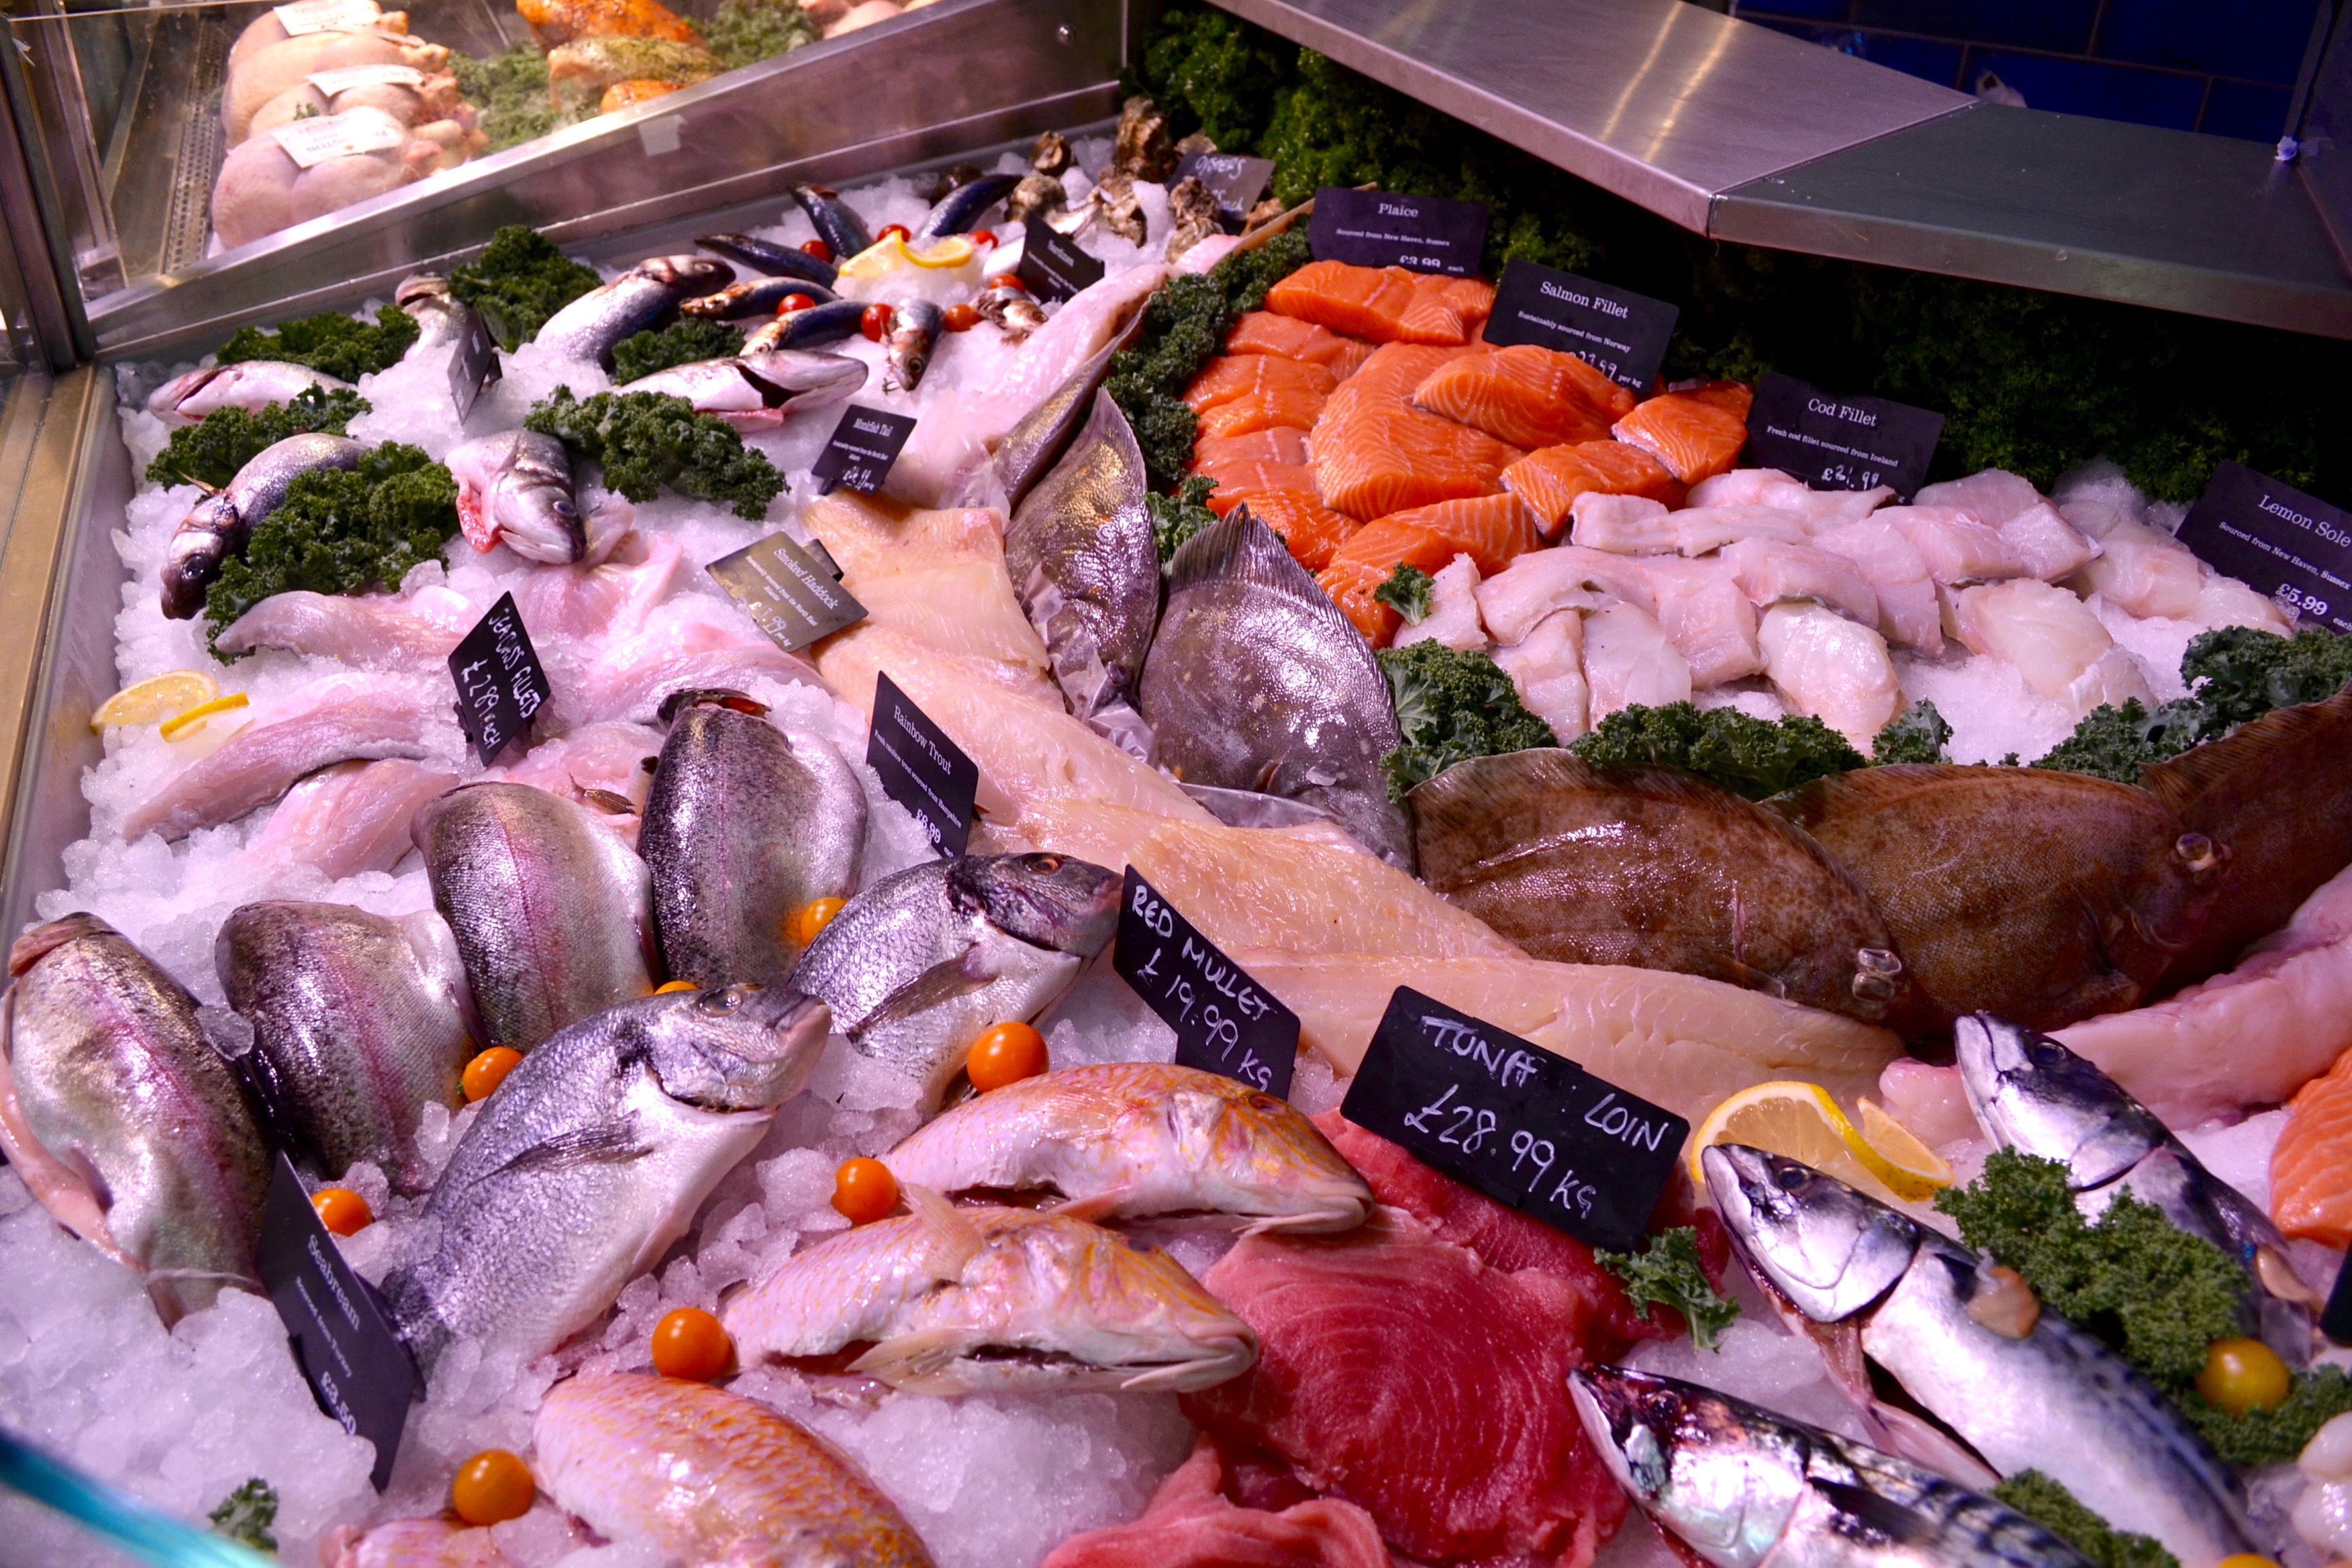 Fresh Fish Counter, Farndon Fields, Market Harborough, Leicestershire